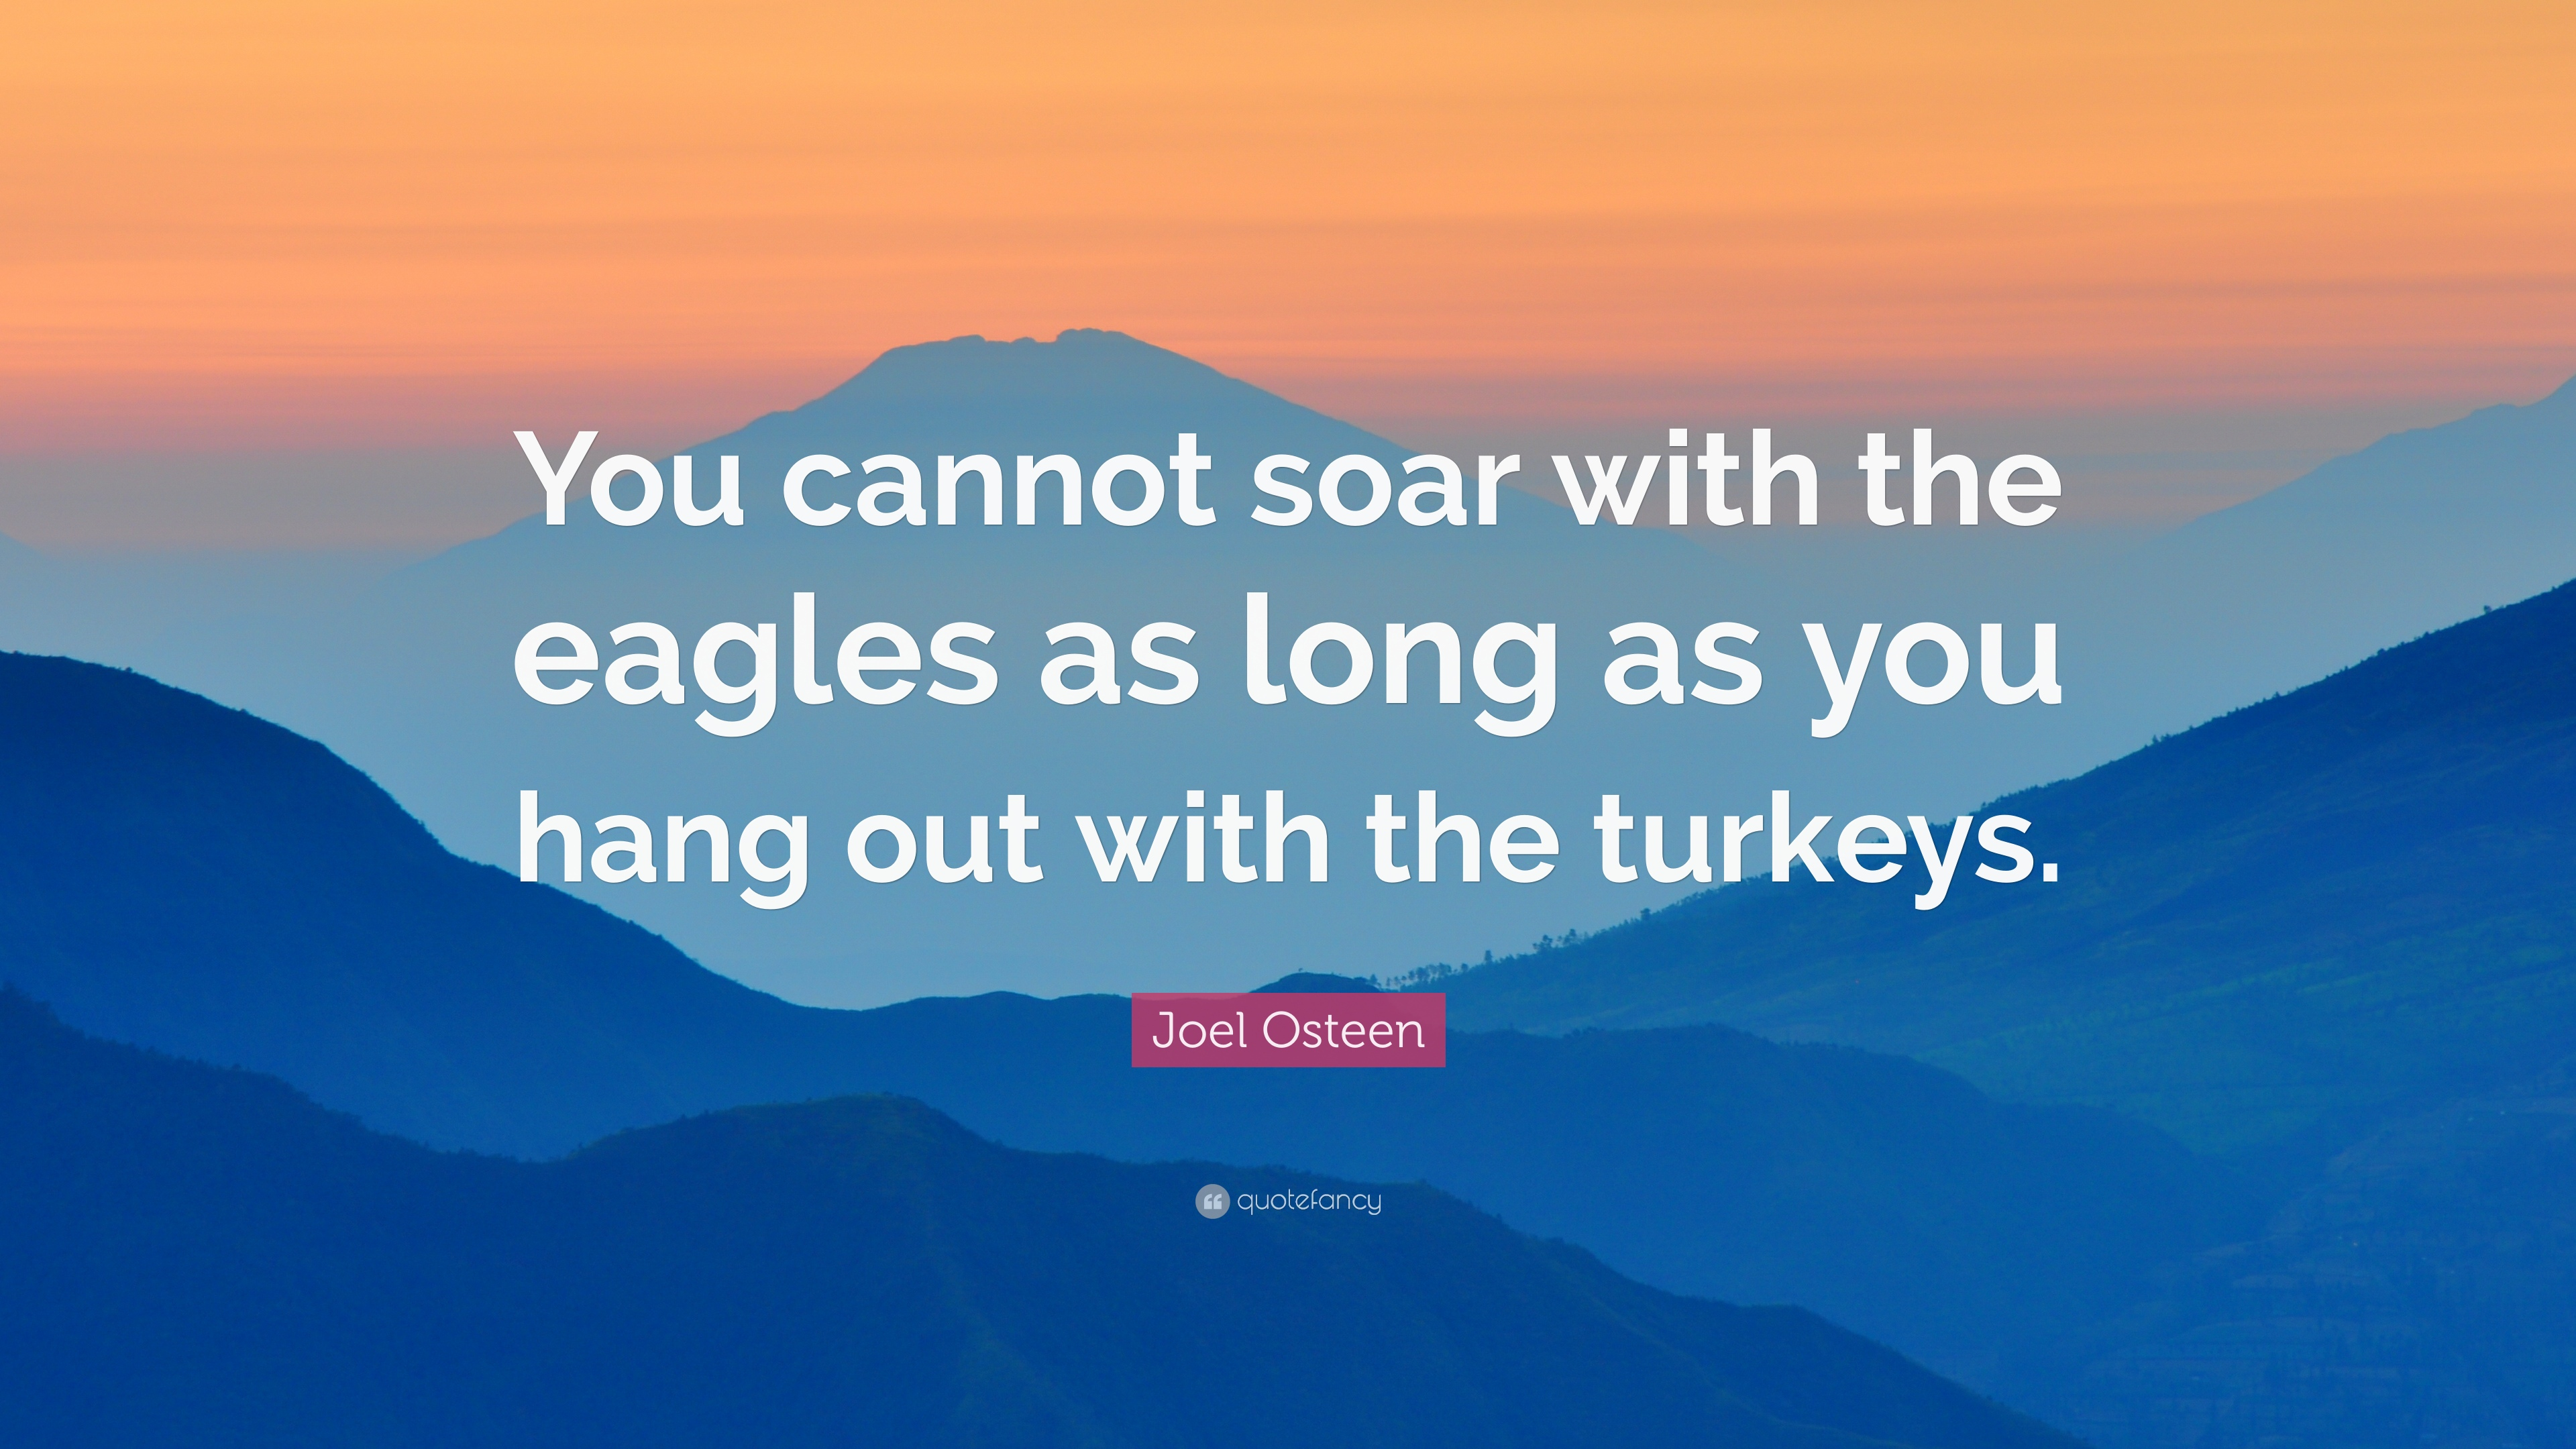 Joel Osteen Quote You Cannot Soar With The Eagles As Long As You